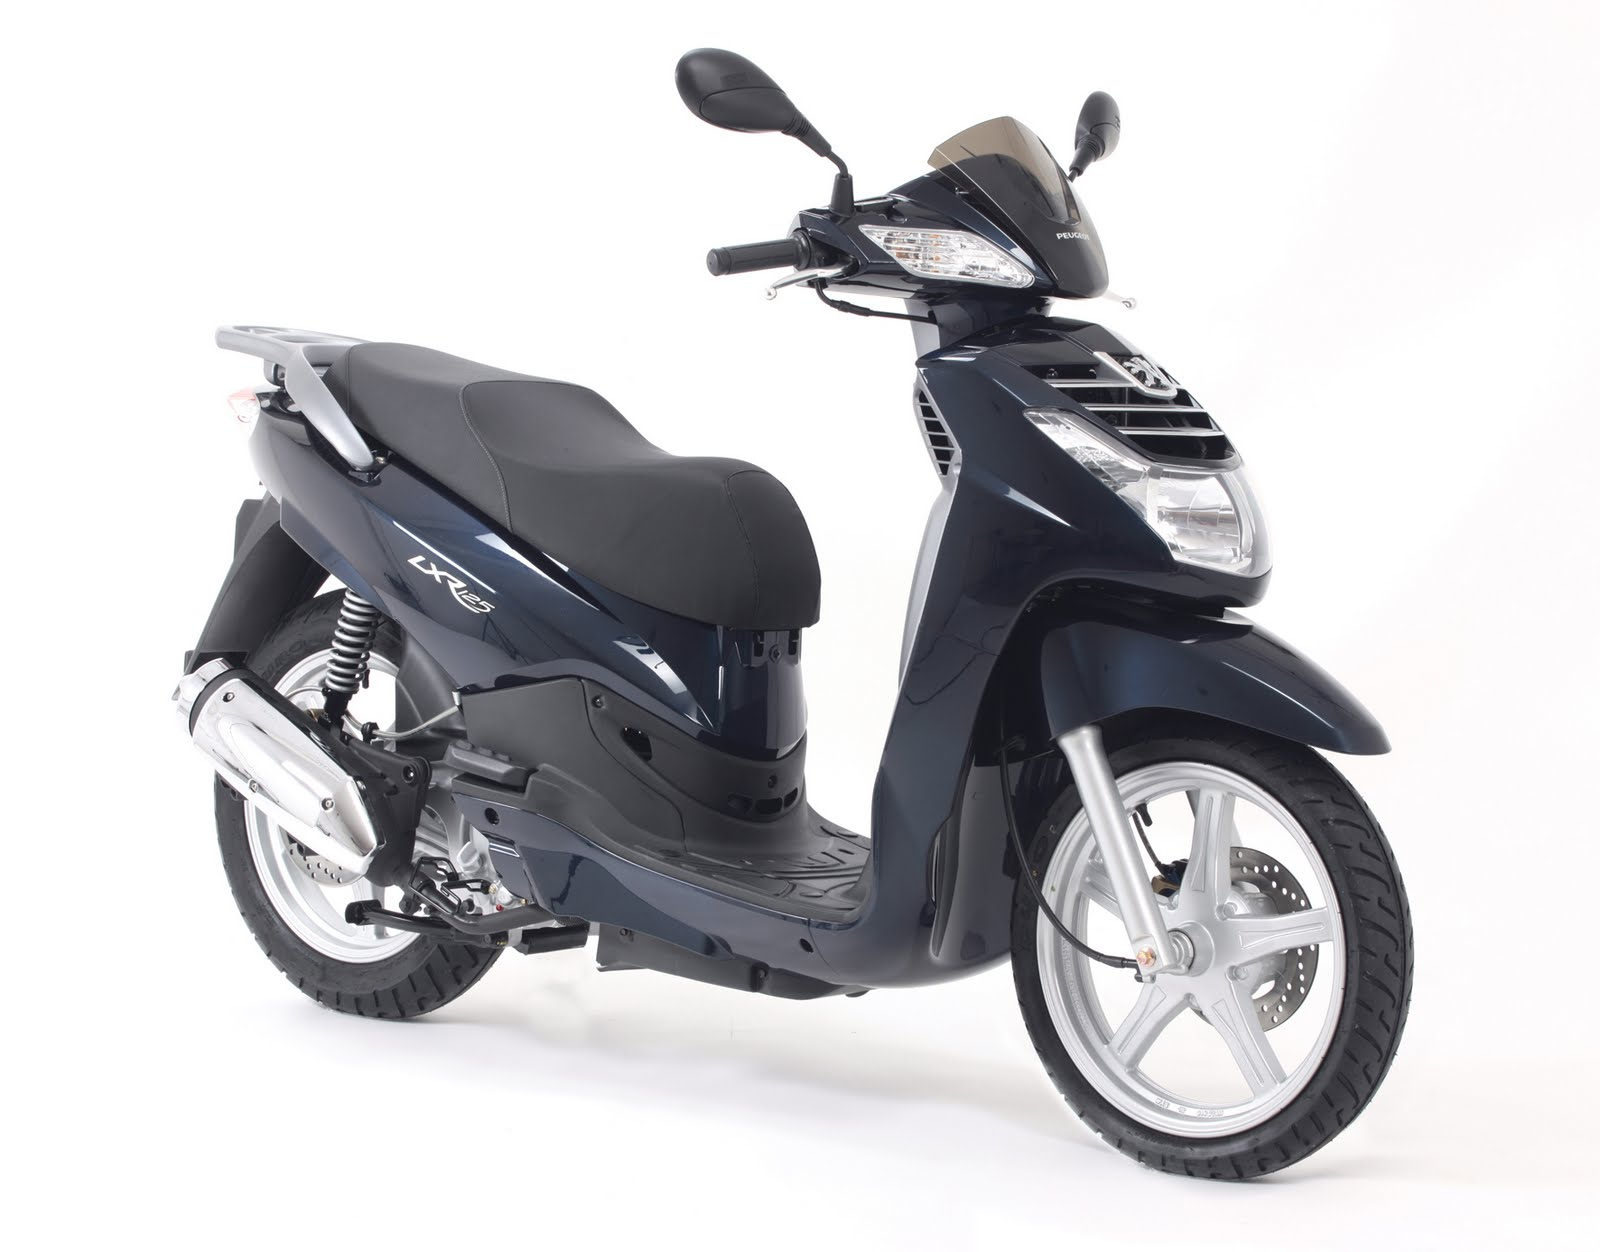 peugeot celebrates with new big wheel lxr 125 scooter new motorcycles. Black Bedroom Furniture Sets. Home Design Ideas